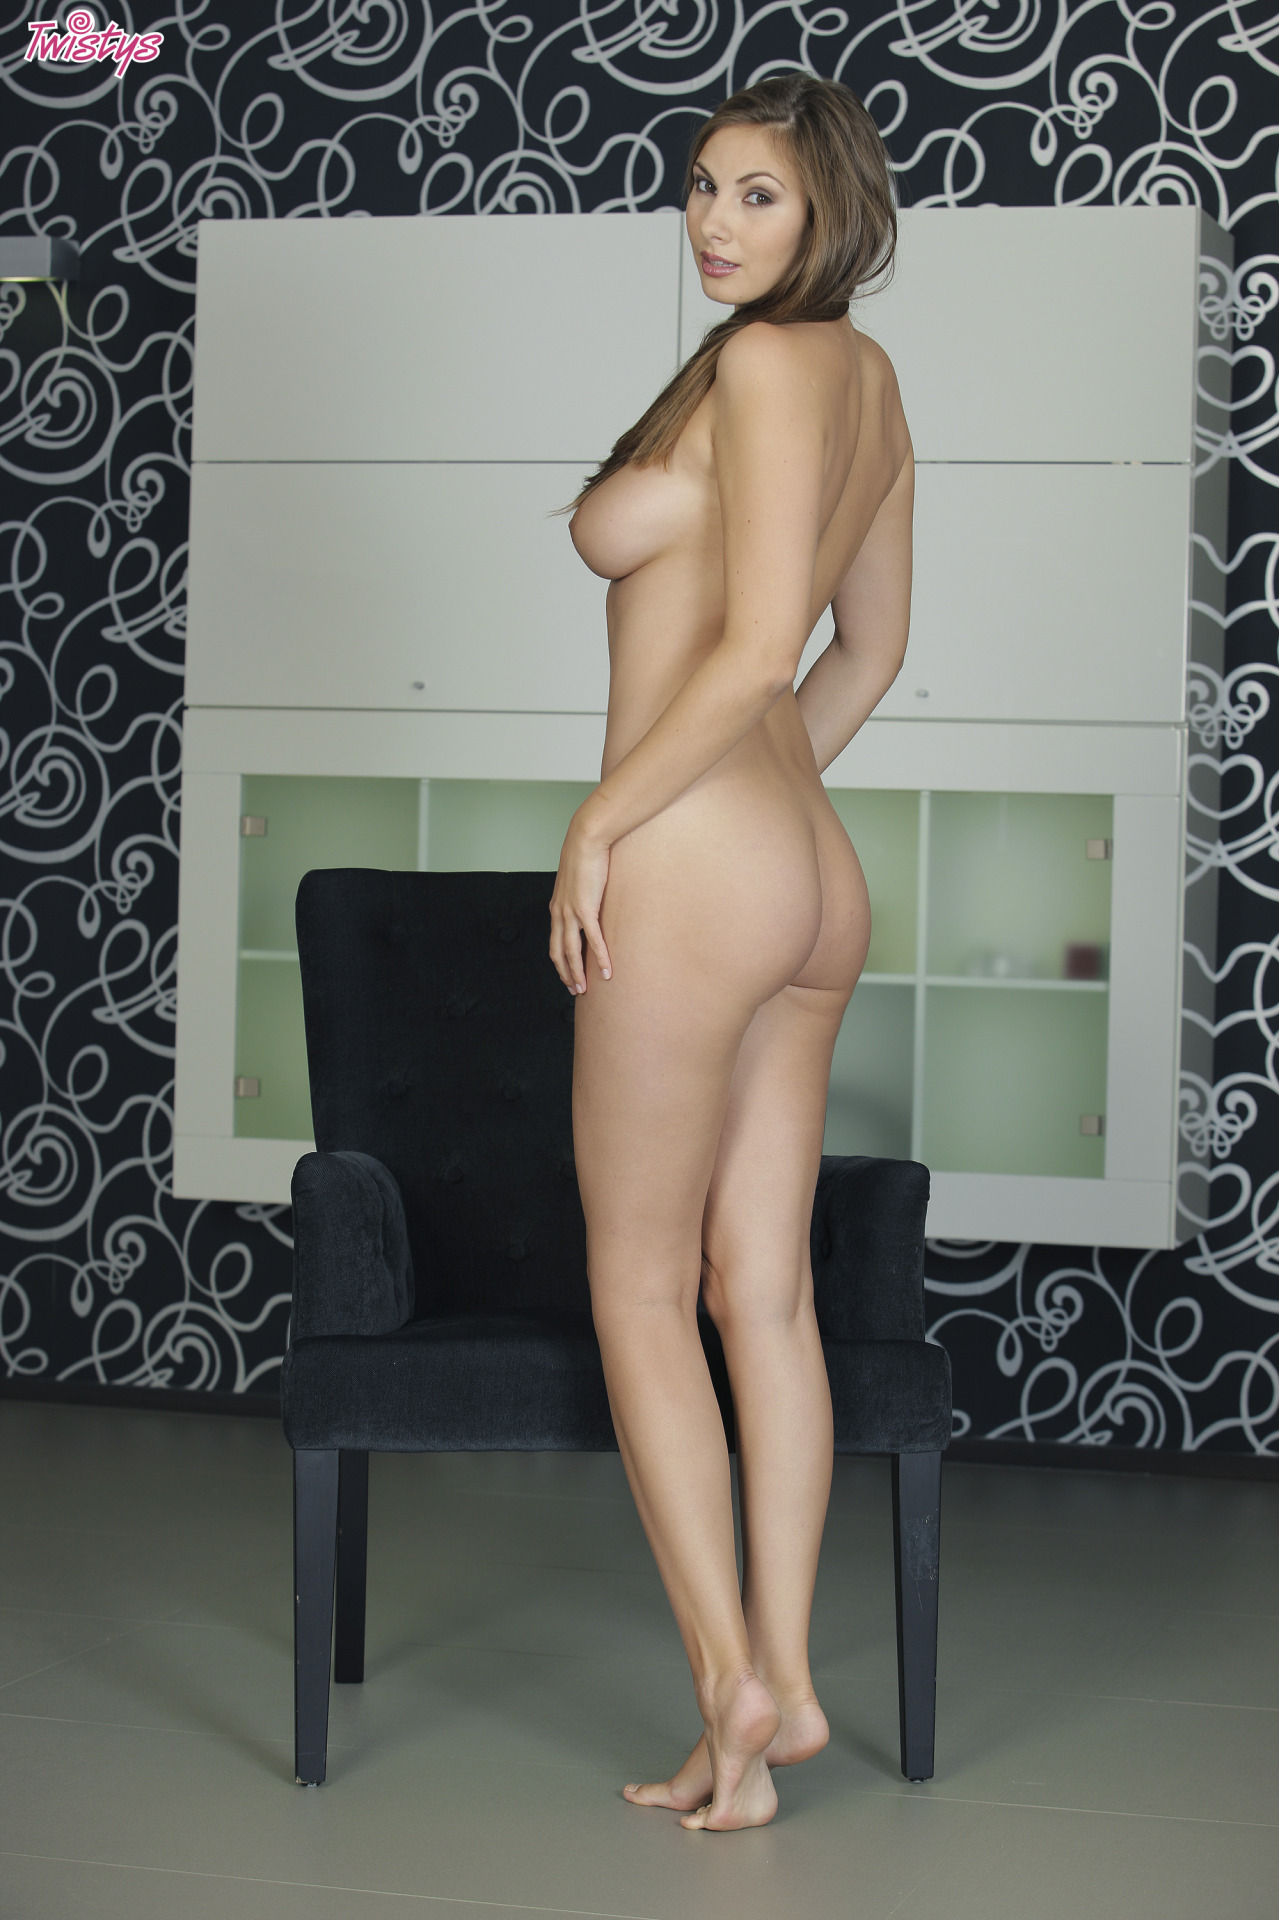 Connie Carter / Mary Grey / Conny Lior / Roselyne A / Josephine – Yet More Busty Loveliness Part 1 Of 2 8